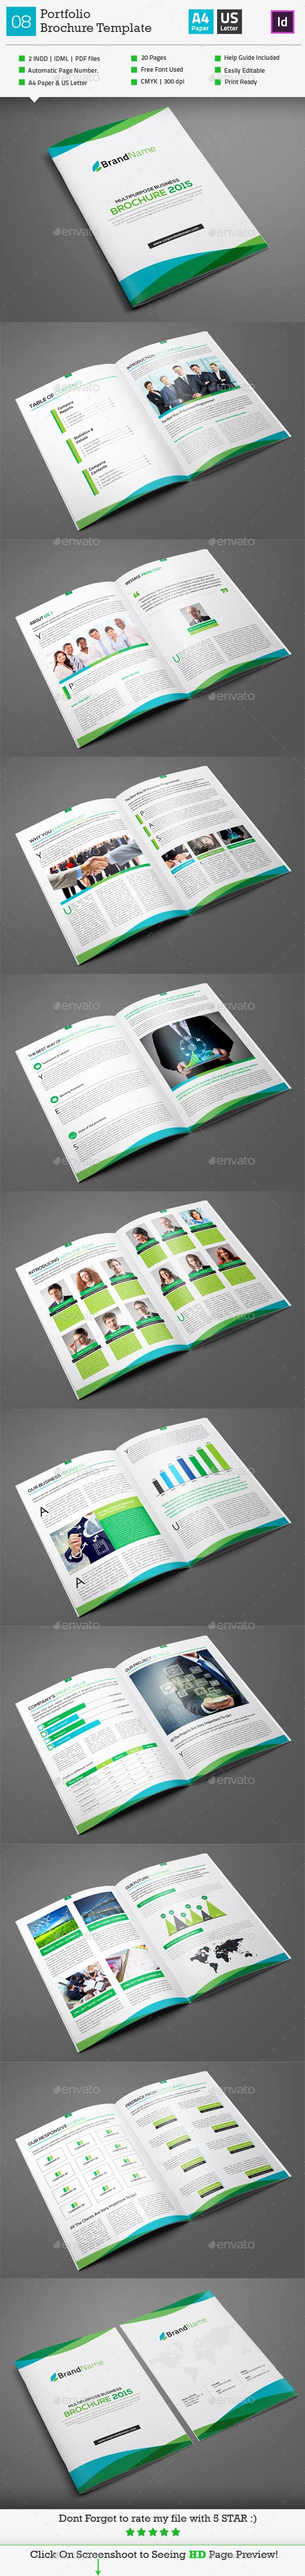 GraphicRiver Multipurpose Brochure Template 02 10255037